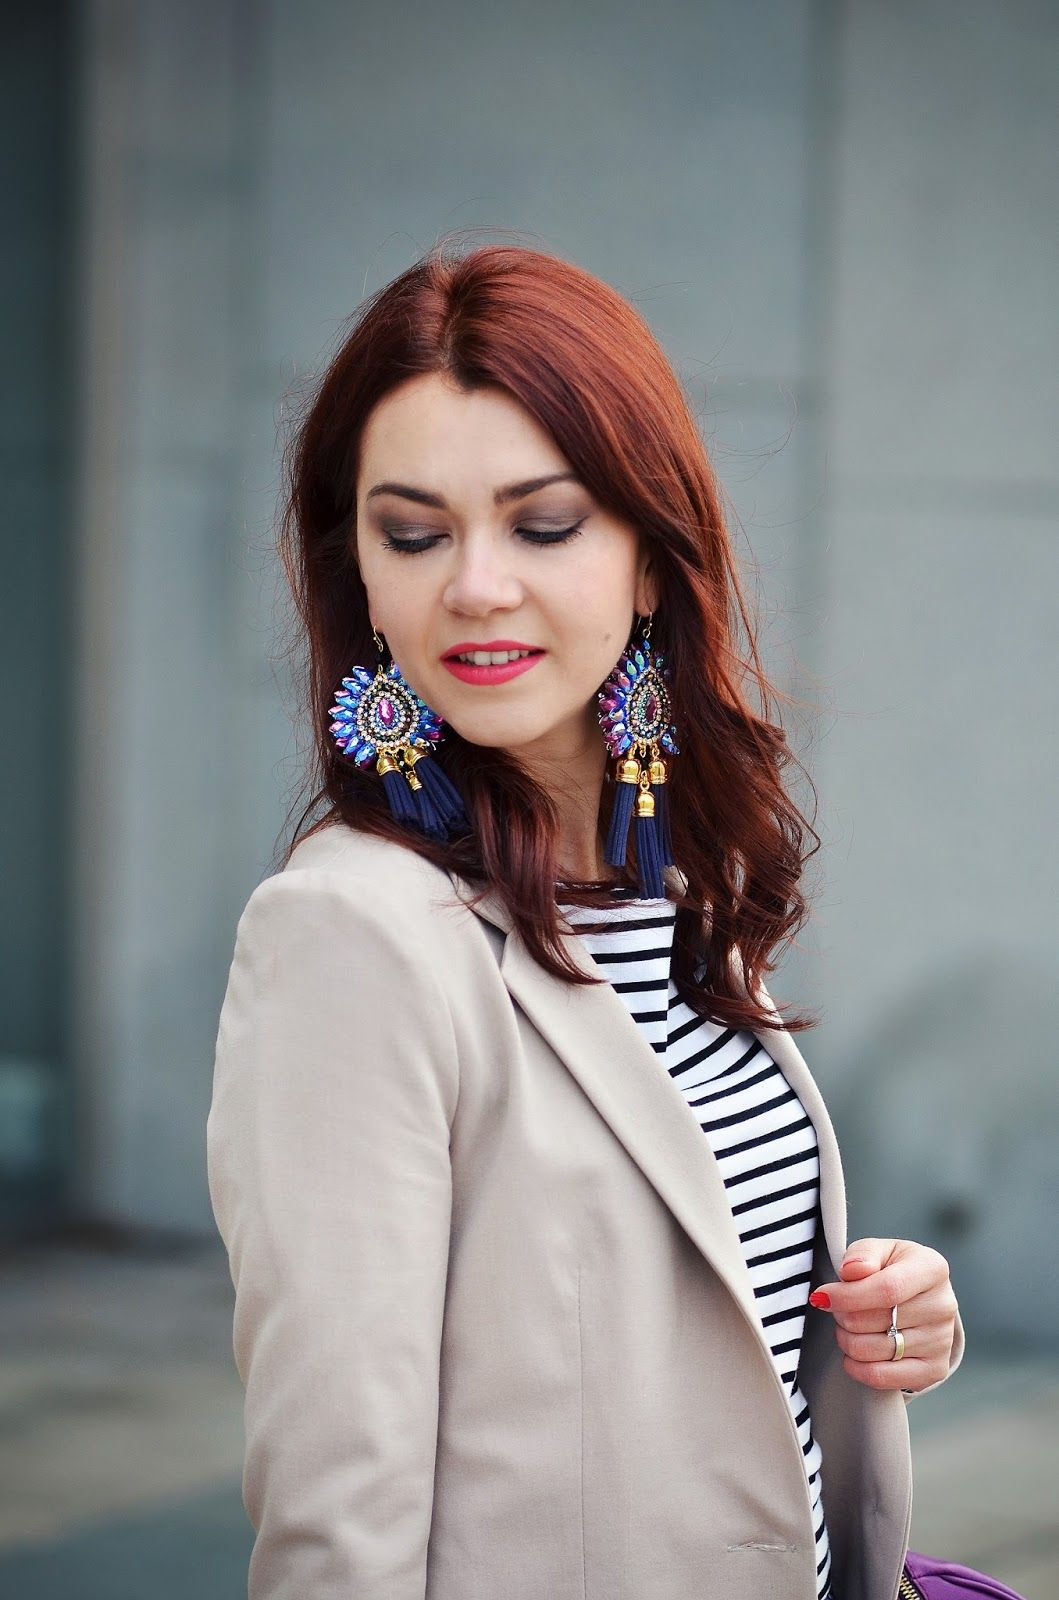 Beige blazer, stripes, luxury earings